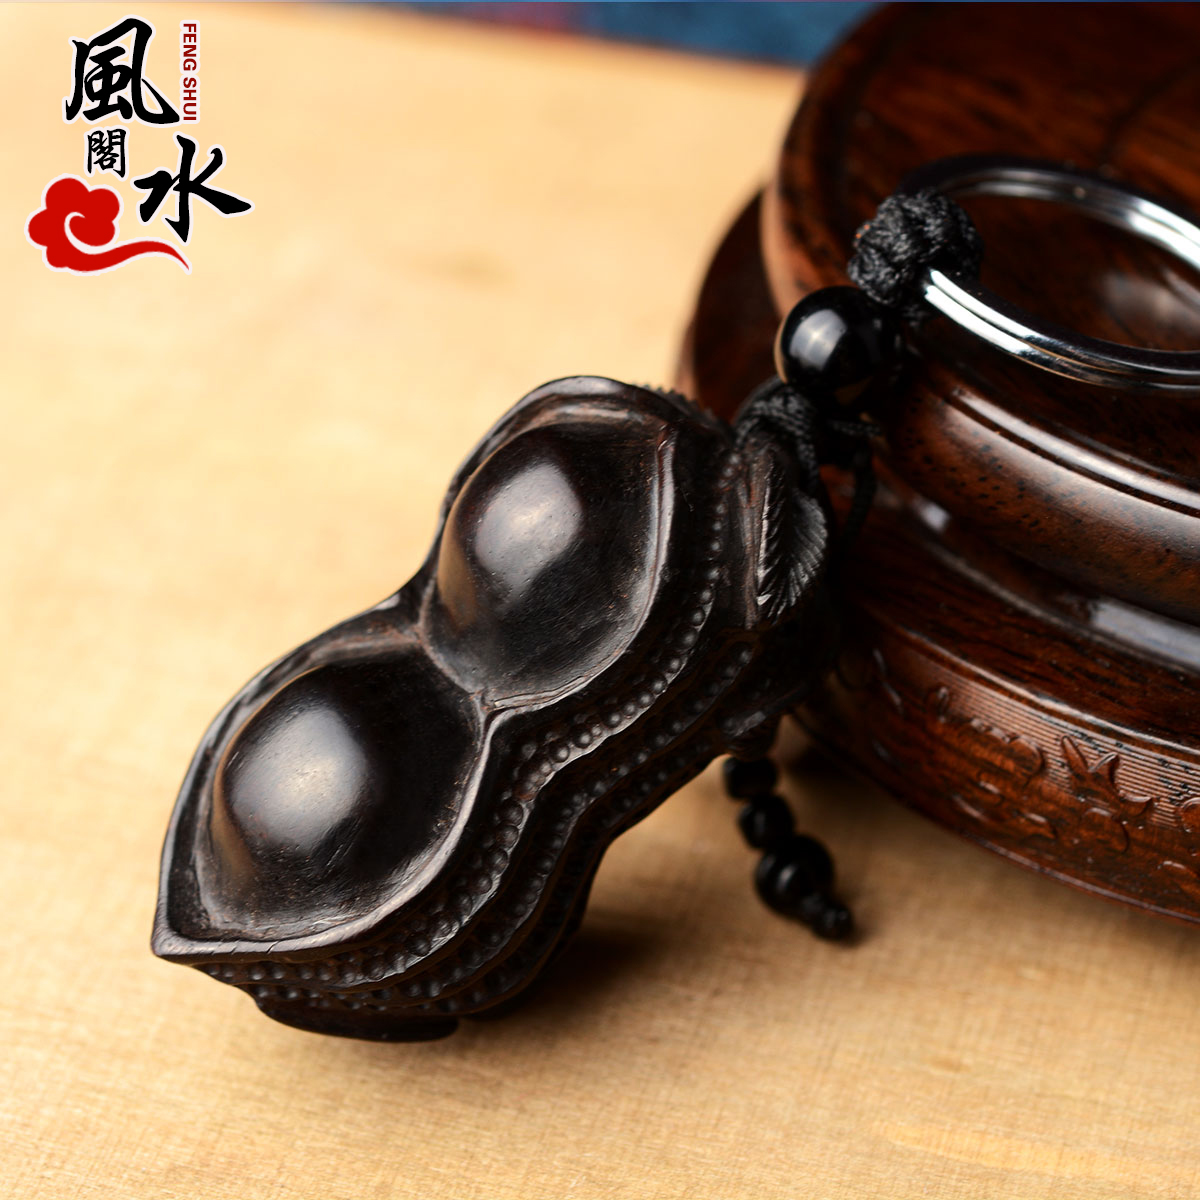 Feng shui house mahogany calabash gourd peanut hand pieces car keychain pendant to help the cause of creative home